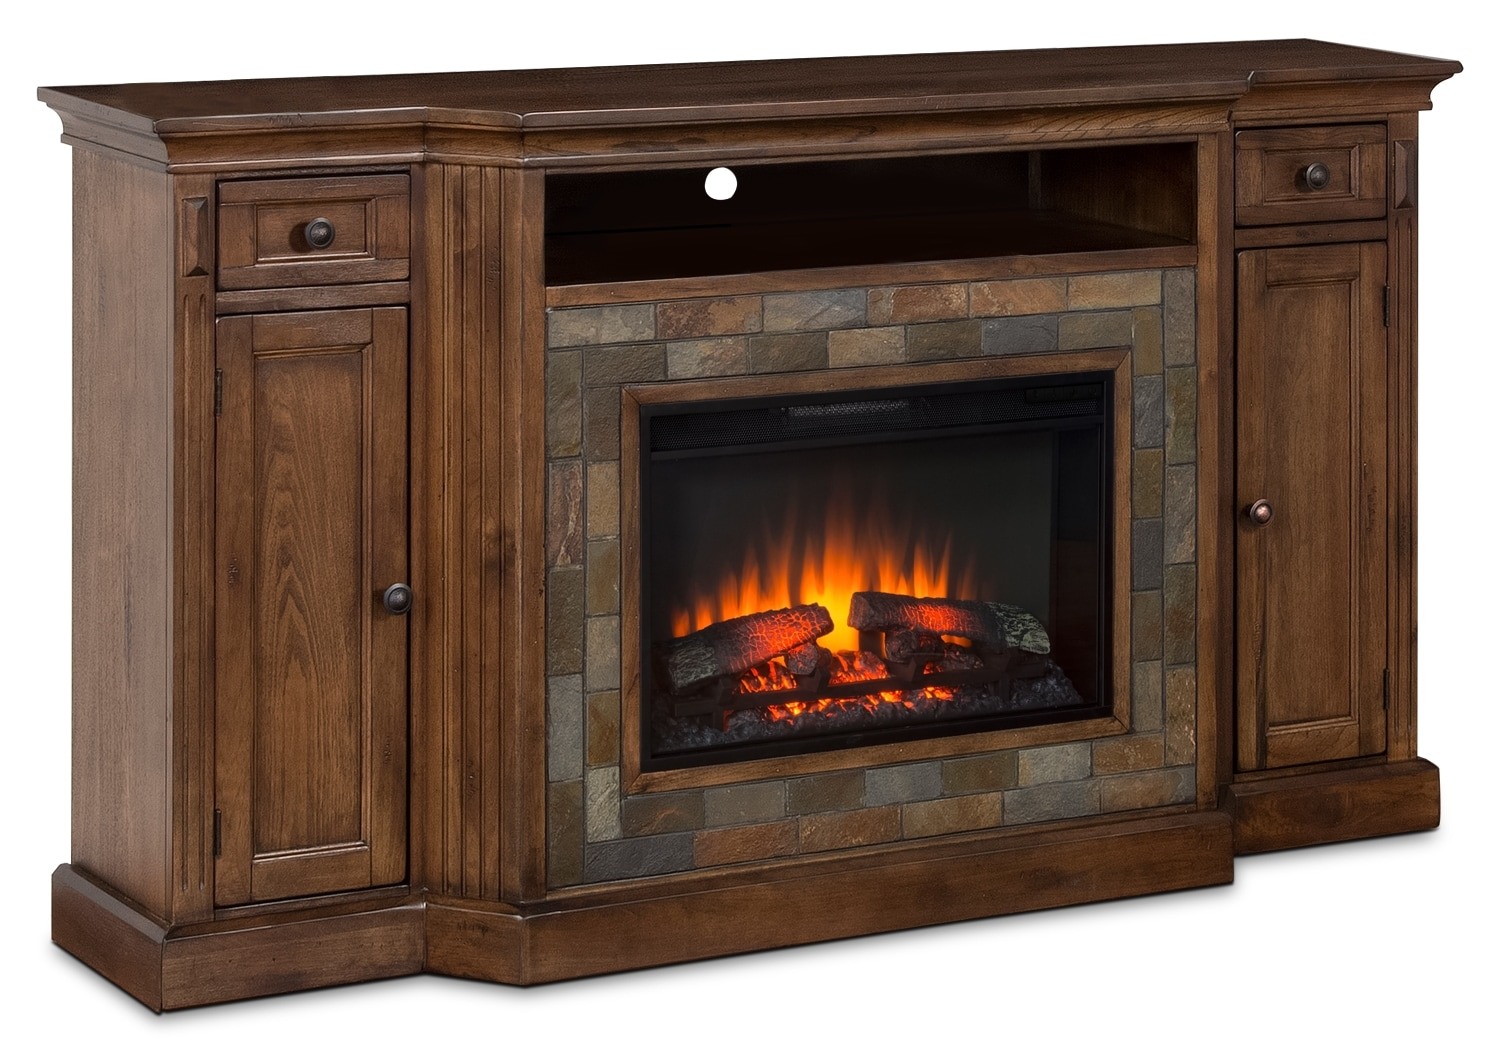 Cambridge 72 TV Stand with Log Firebox  The Brick -> Meuble Tv Foyer Brick